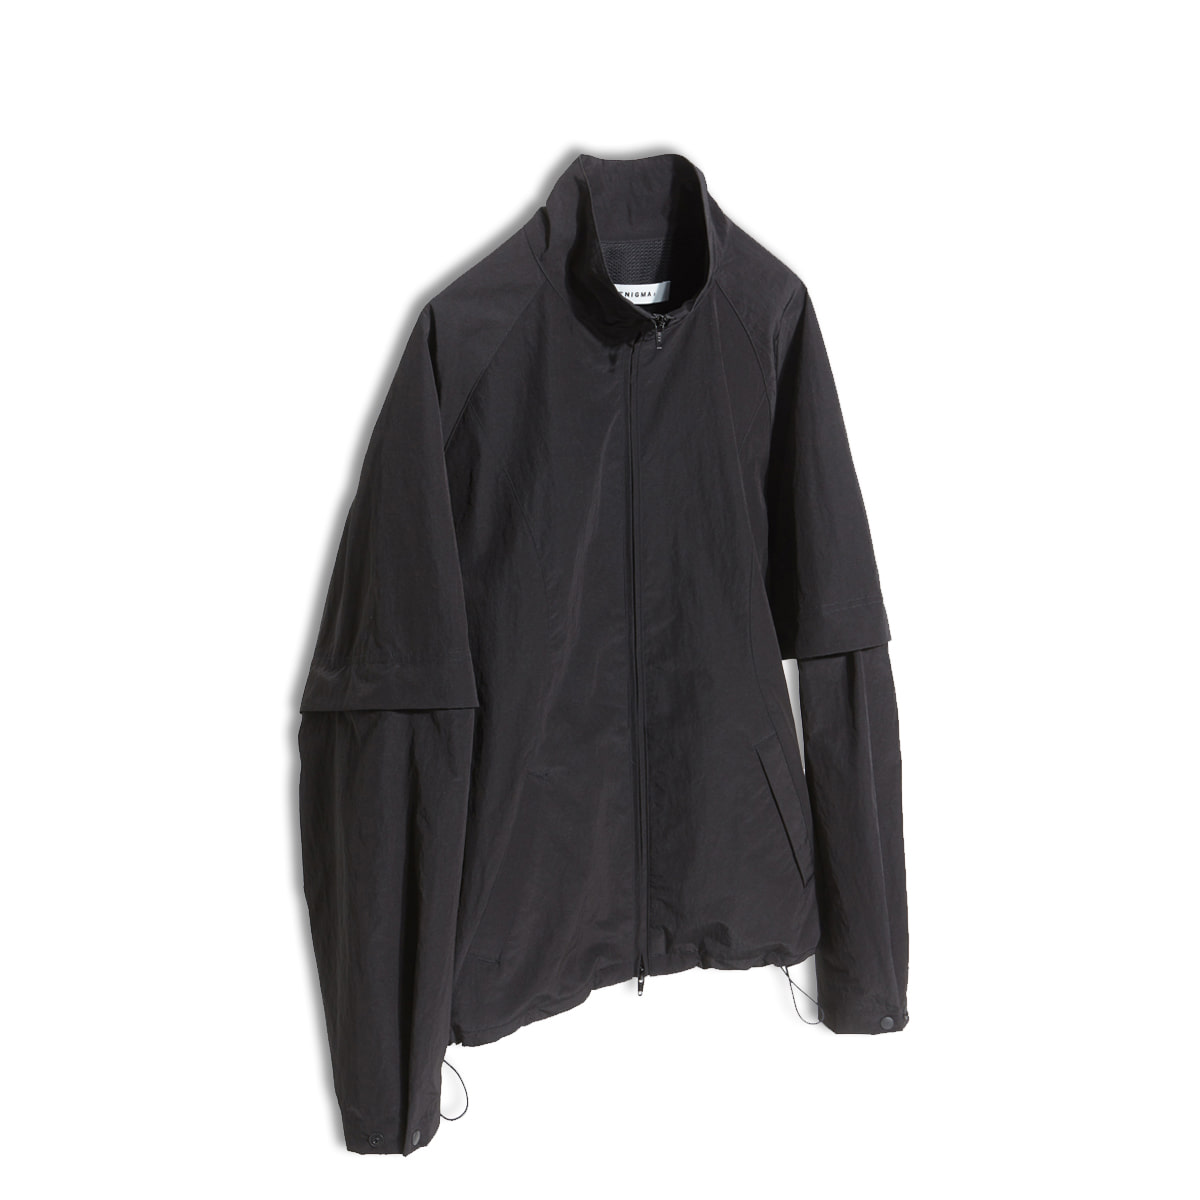 [ENIGMA] DETACHABLE ZIP-UP JACKET 'BLACK'